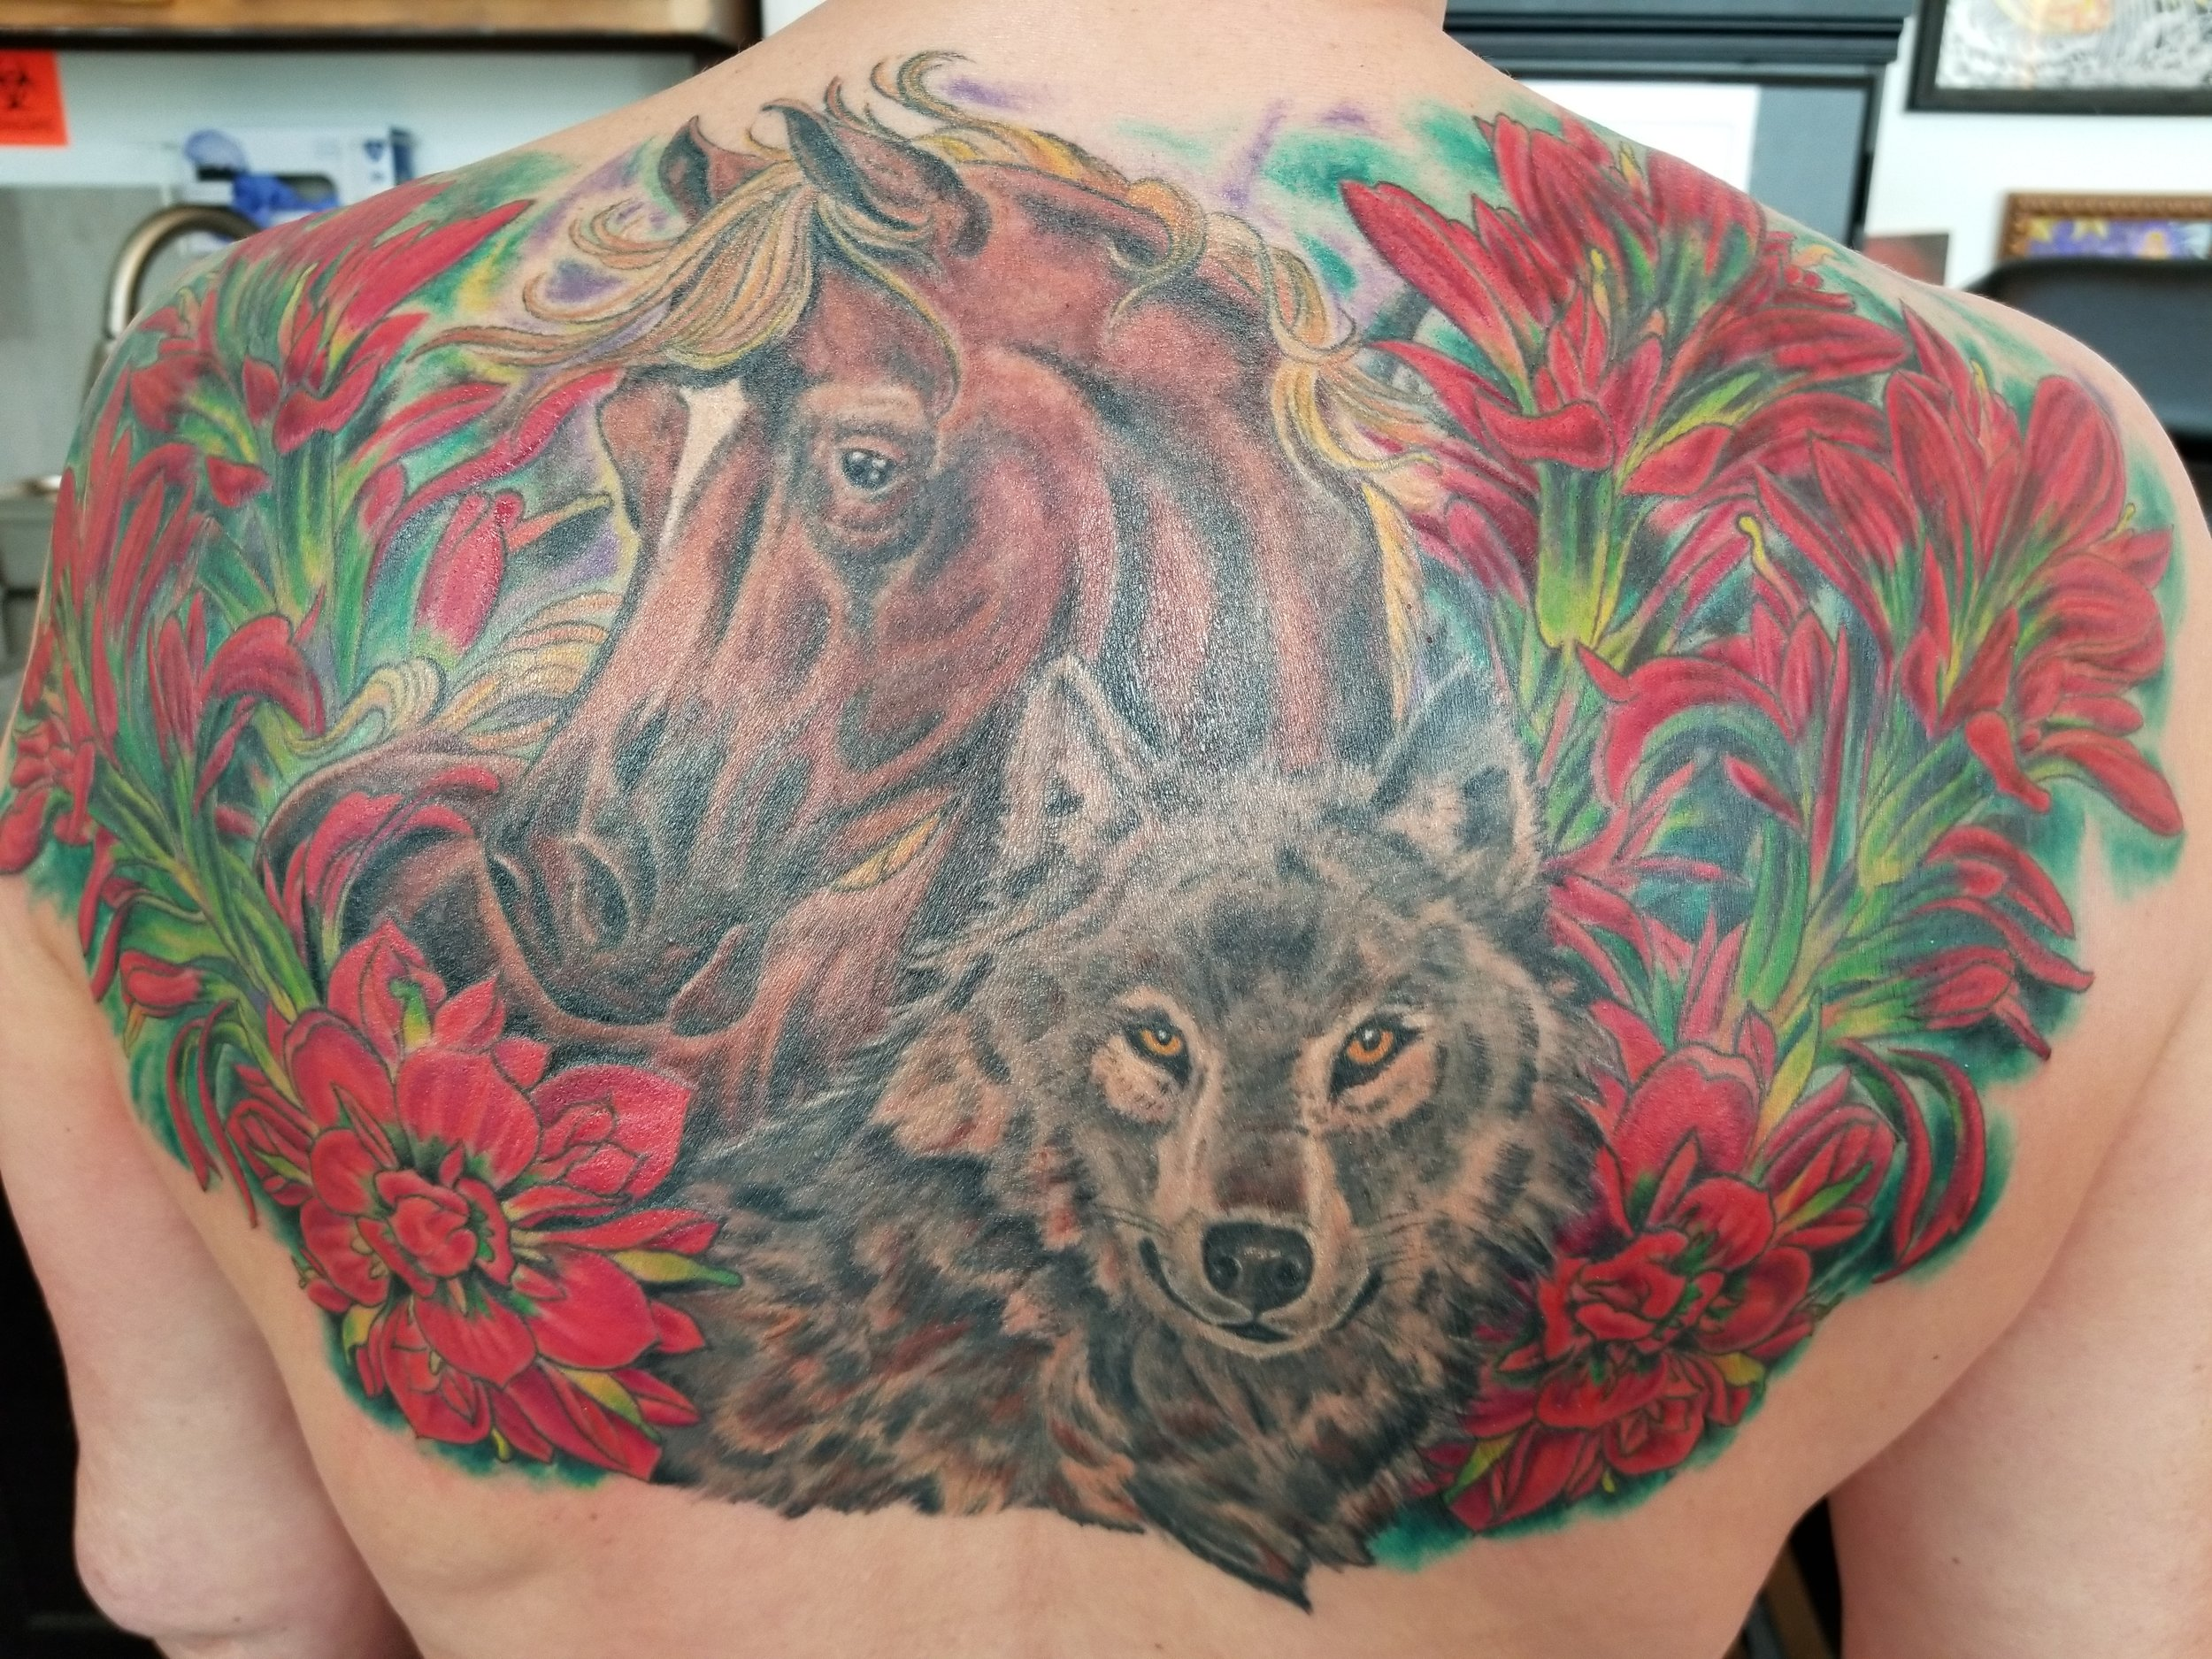 Horse, wolf and Indian paintbrush